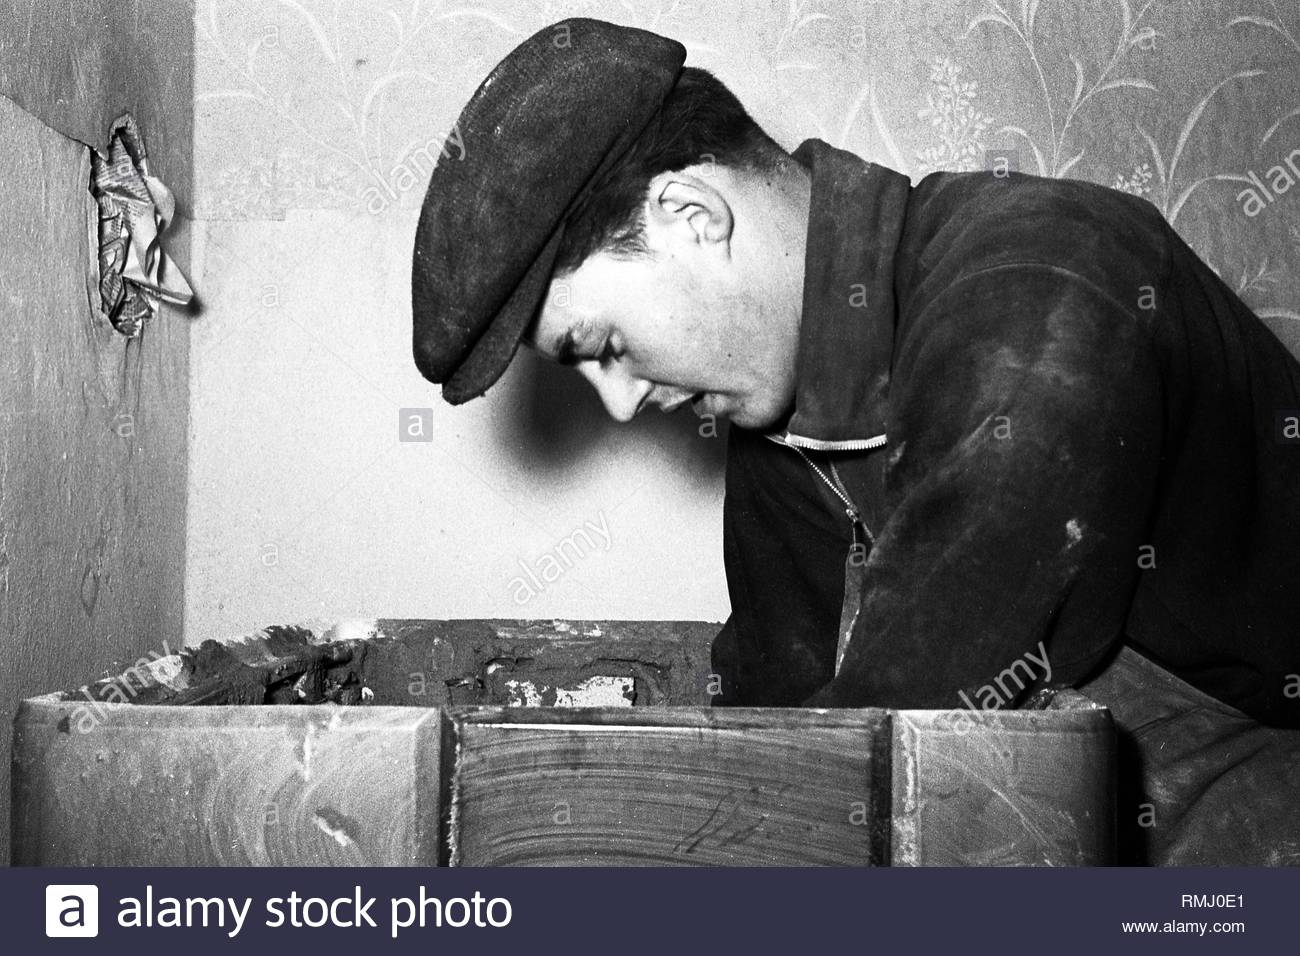 A stove farmer stove fitter puts a tiled stove in a flat in Zschopau in the federal state Saxony in the area of the former GDR, German democratic republic. Foto: Siegfried Bonitz - Stock Image